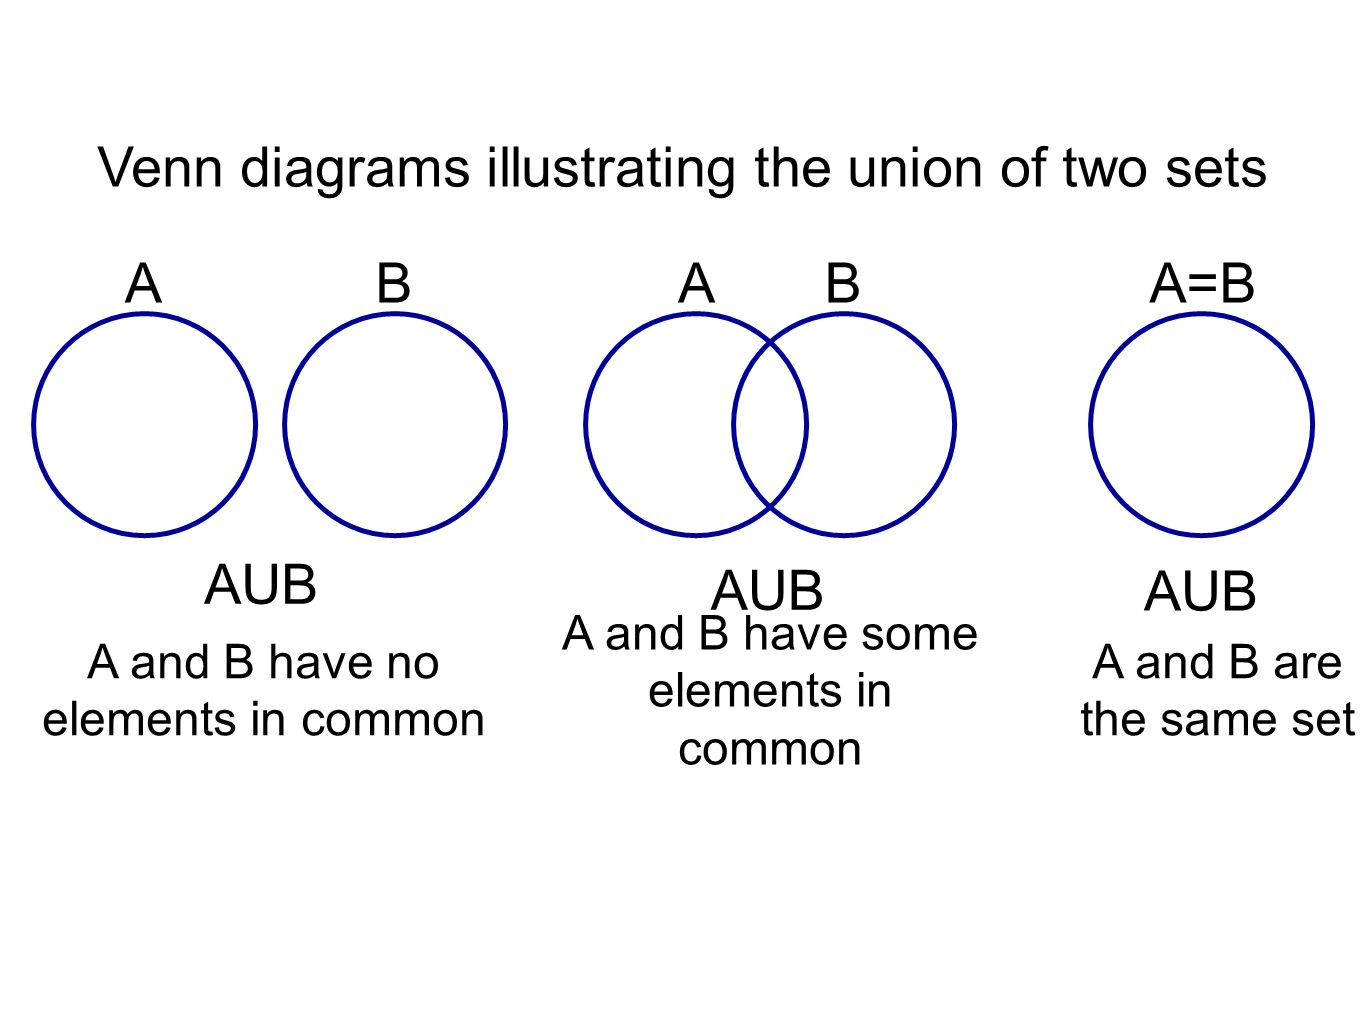 Addition and subtraction of whole numbers ppt video online download venn diagrams illustrating the union of two sets pooptronica